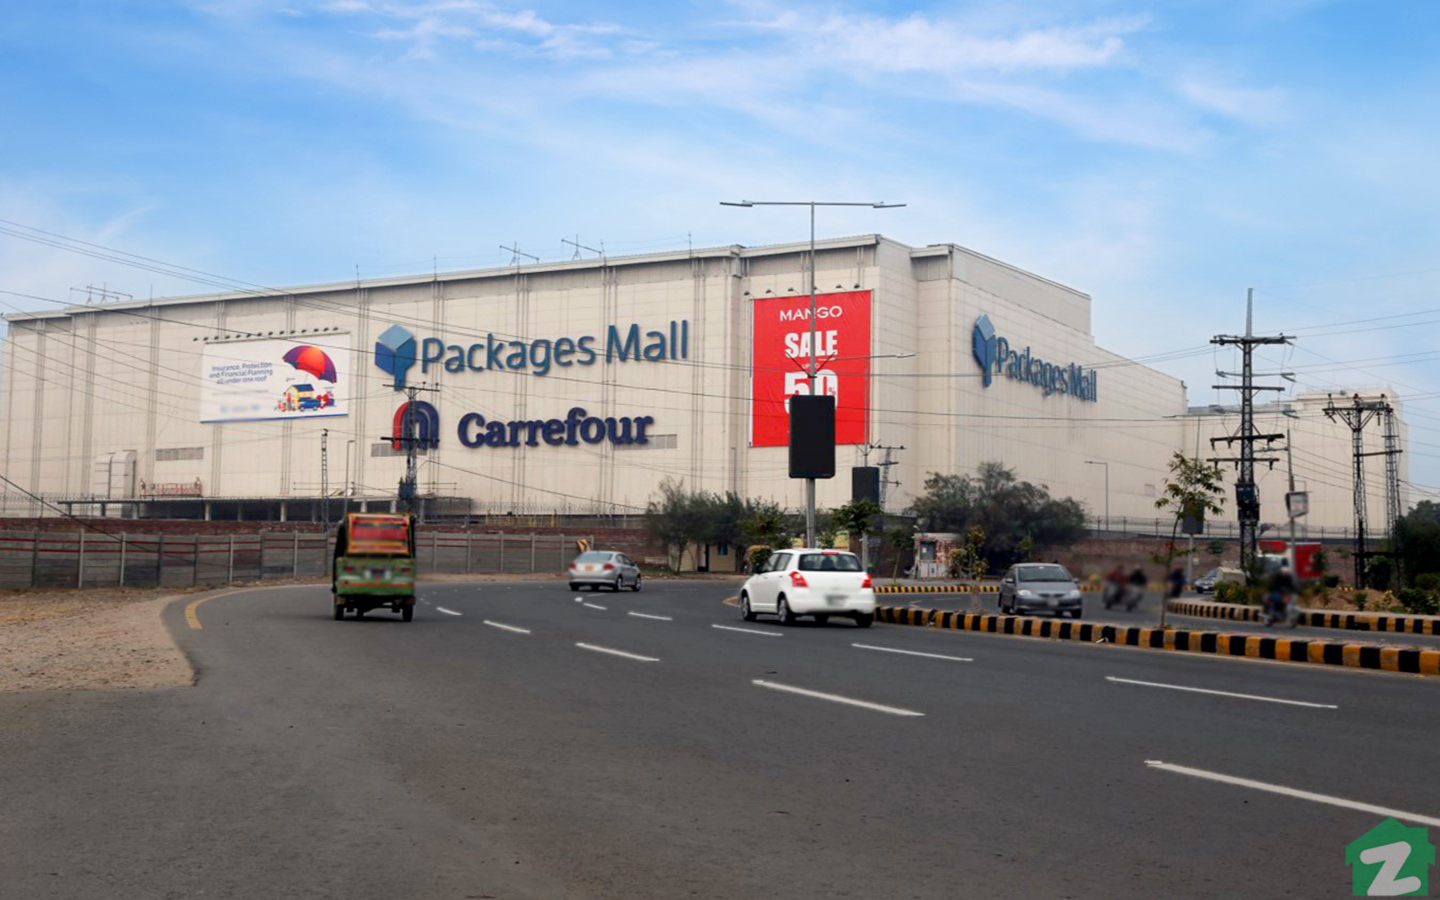 Packages Mall is one of the iconic malls in Lahore, operational only 25 minutes away from society